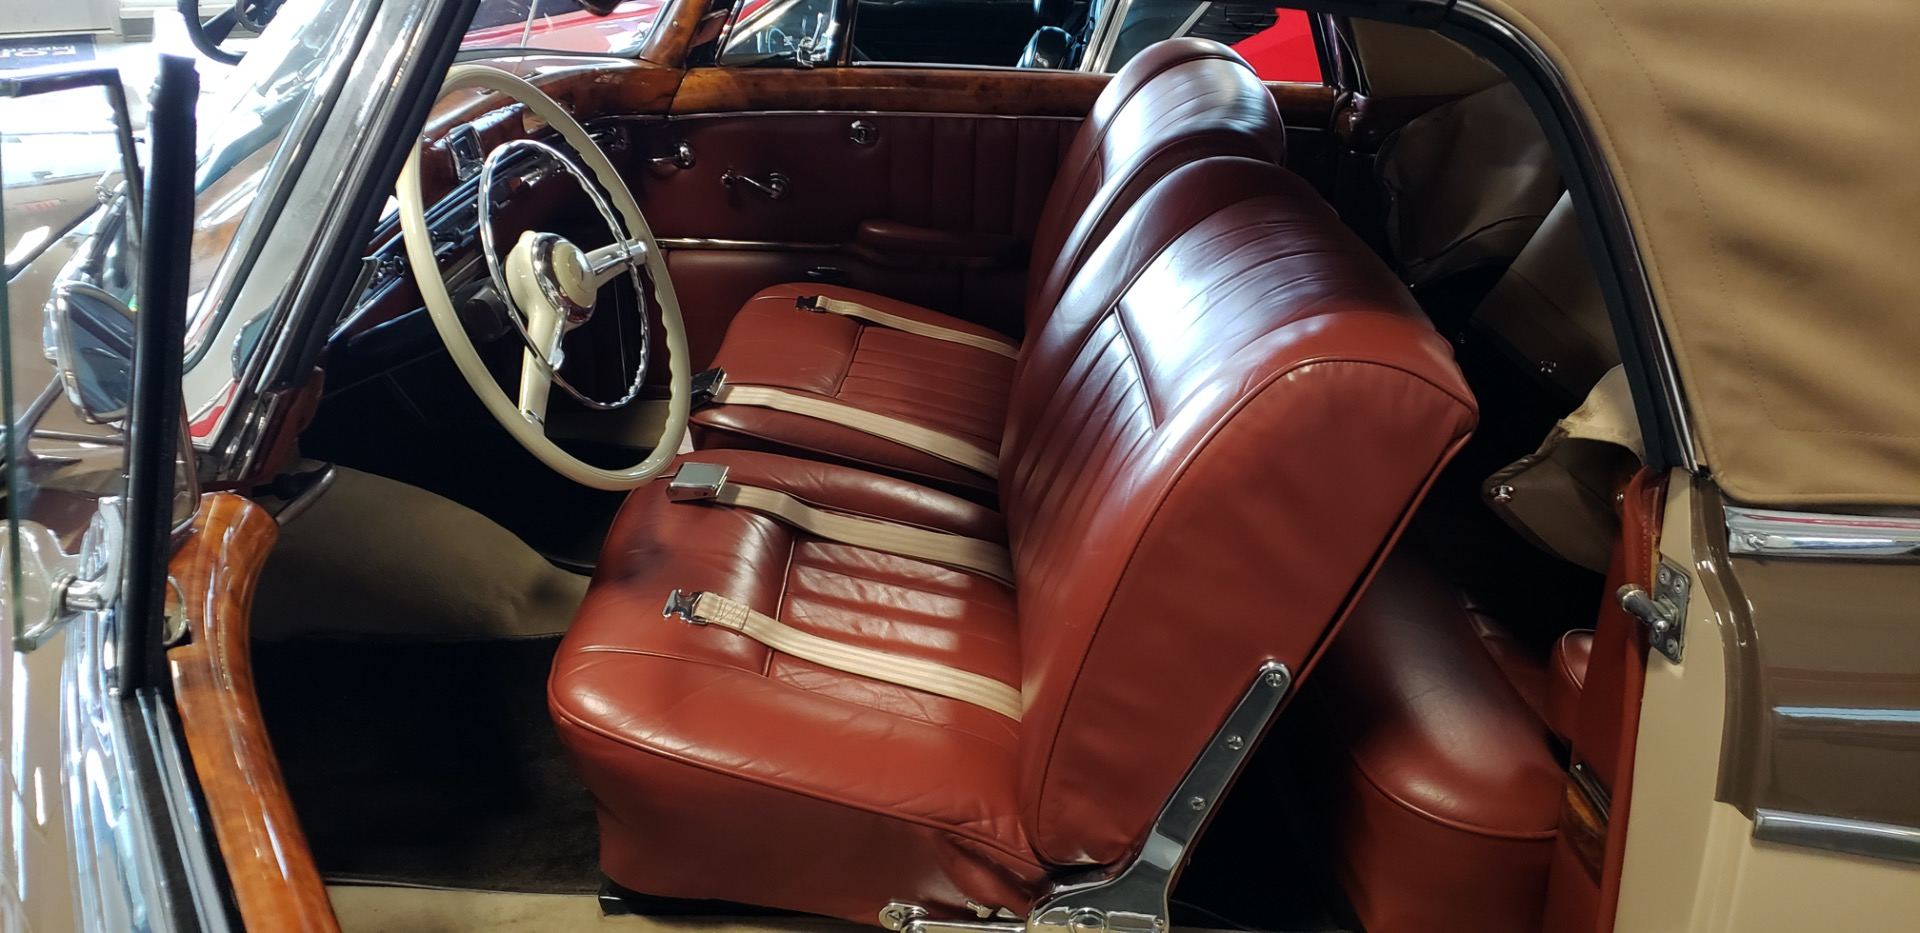 Used 1957 Mercedes-Benz 220 S Cabriolet - Full Restoration for sale Sold at Formula Imports in Charlotte NC 28227 23